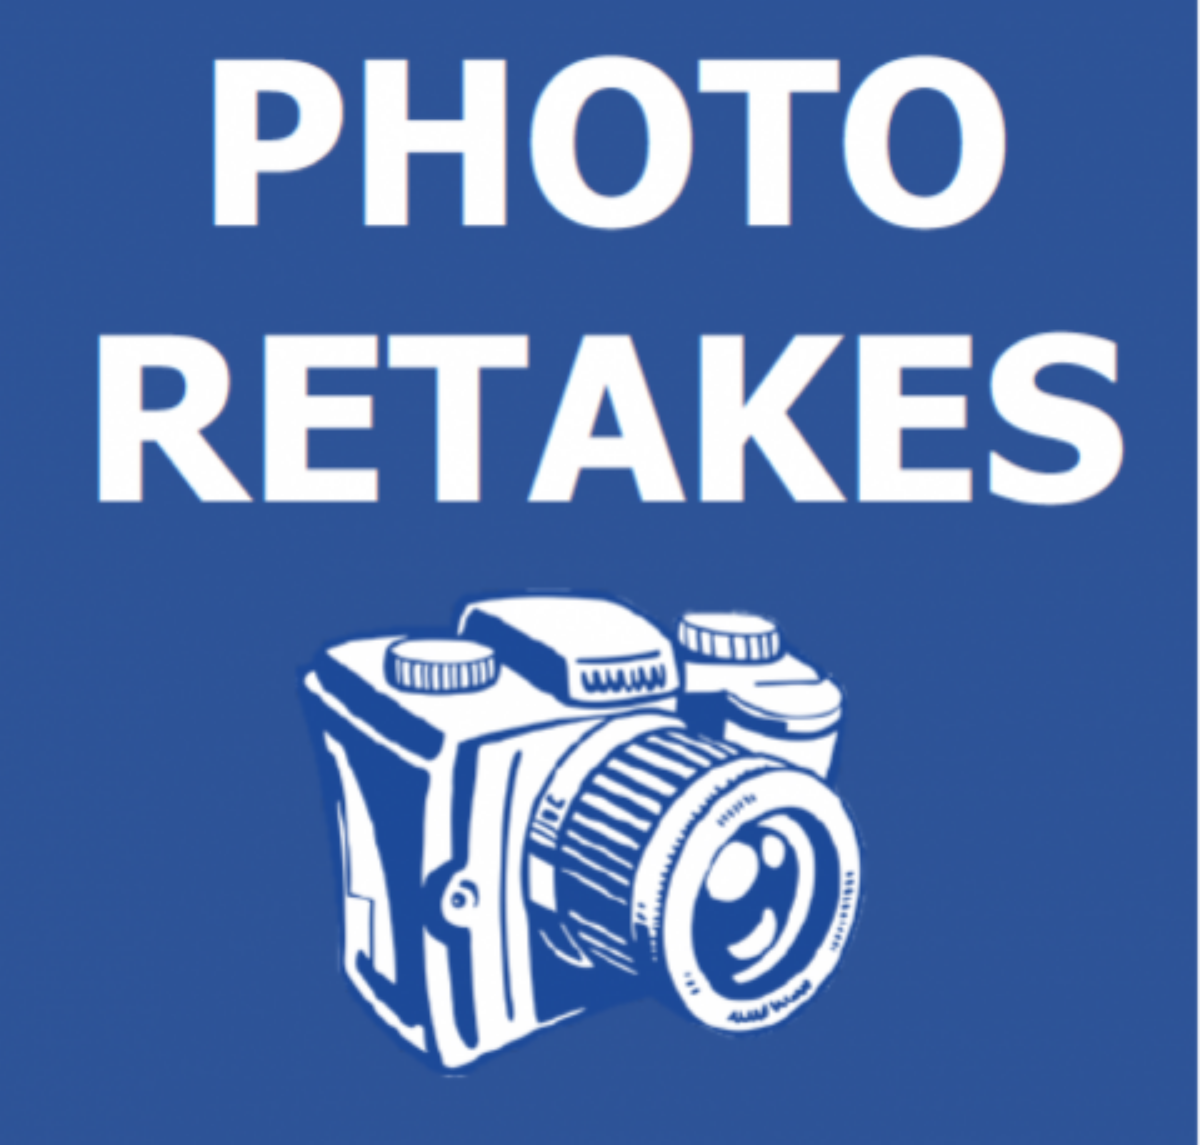 Picture Retake Day is October 1st!